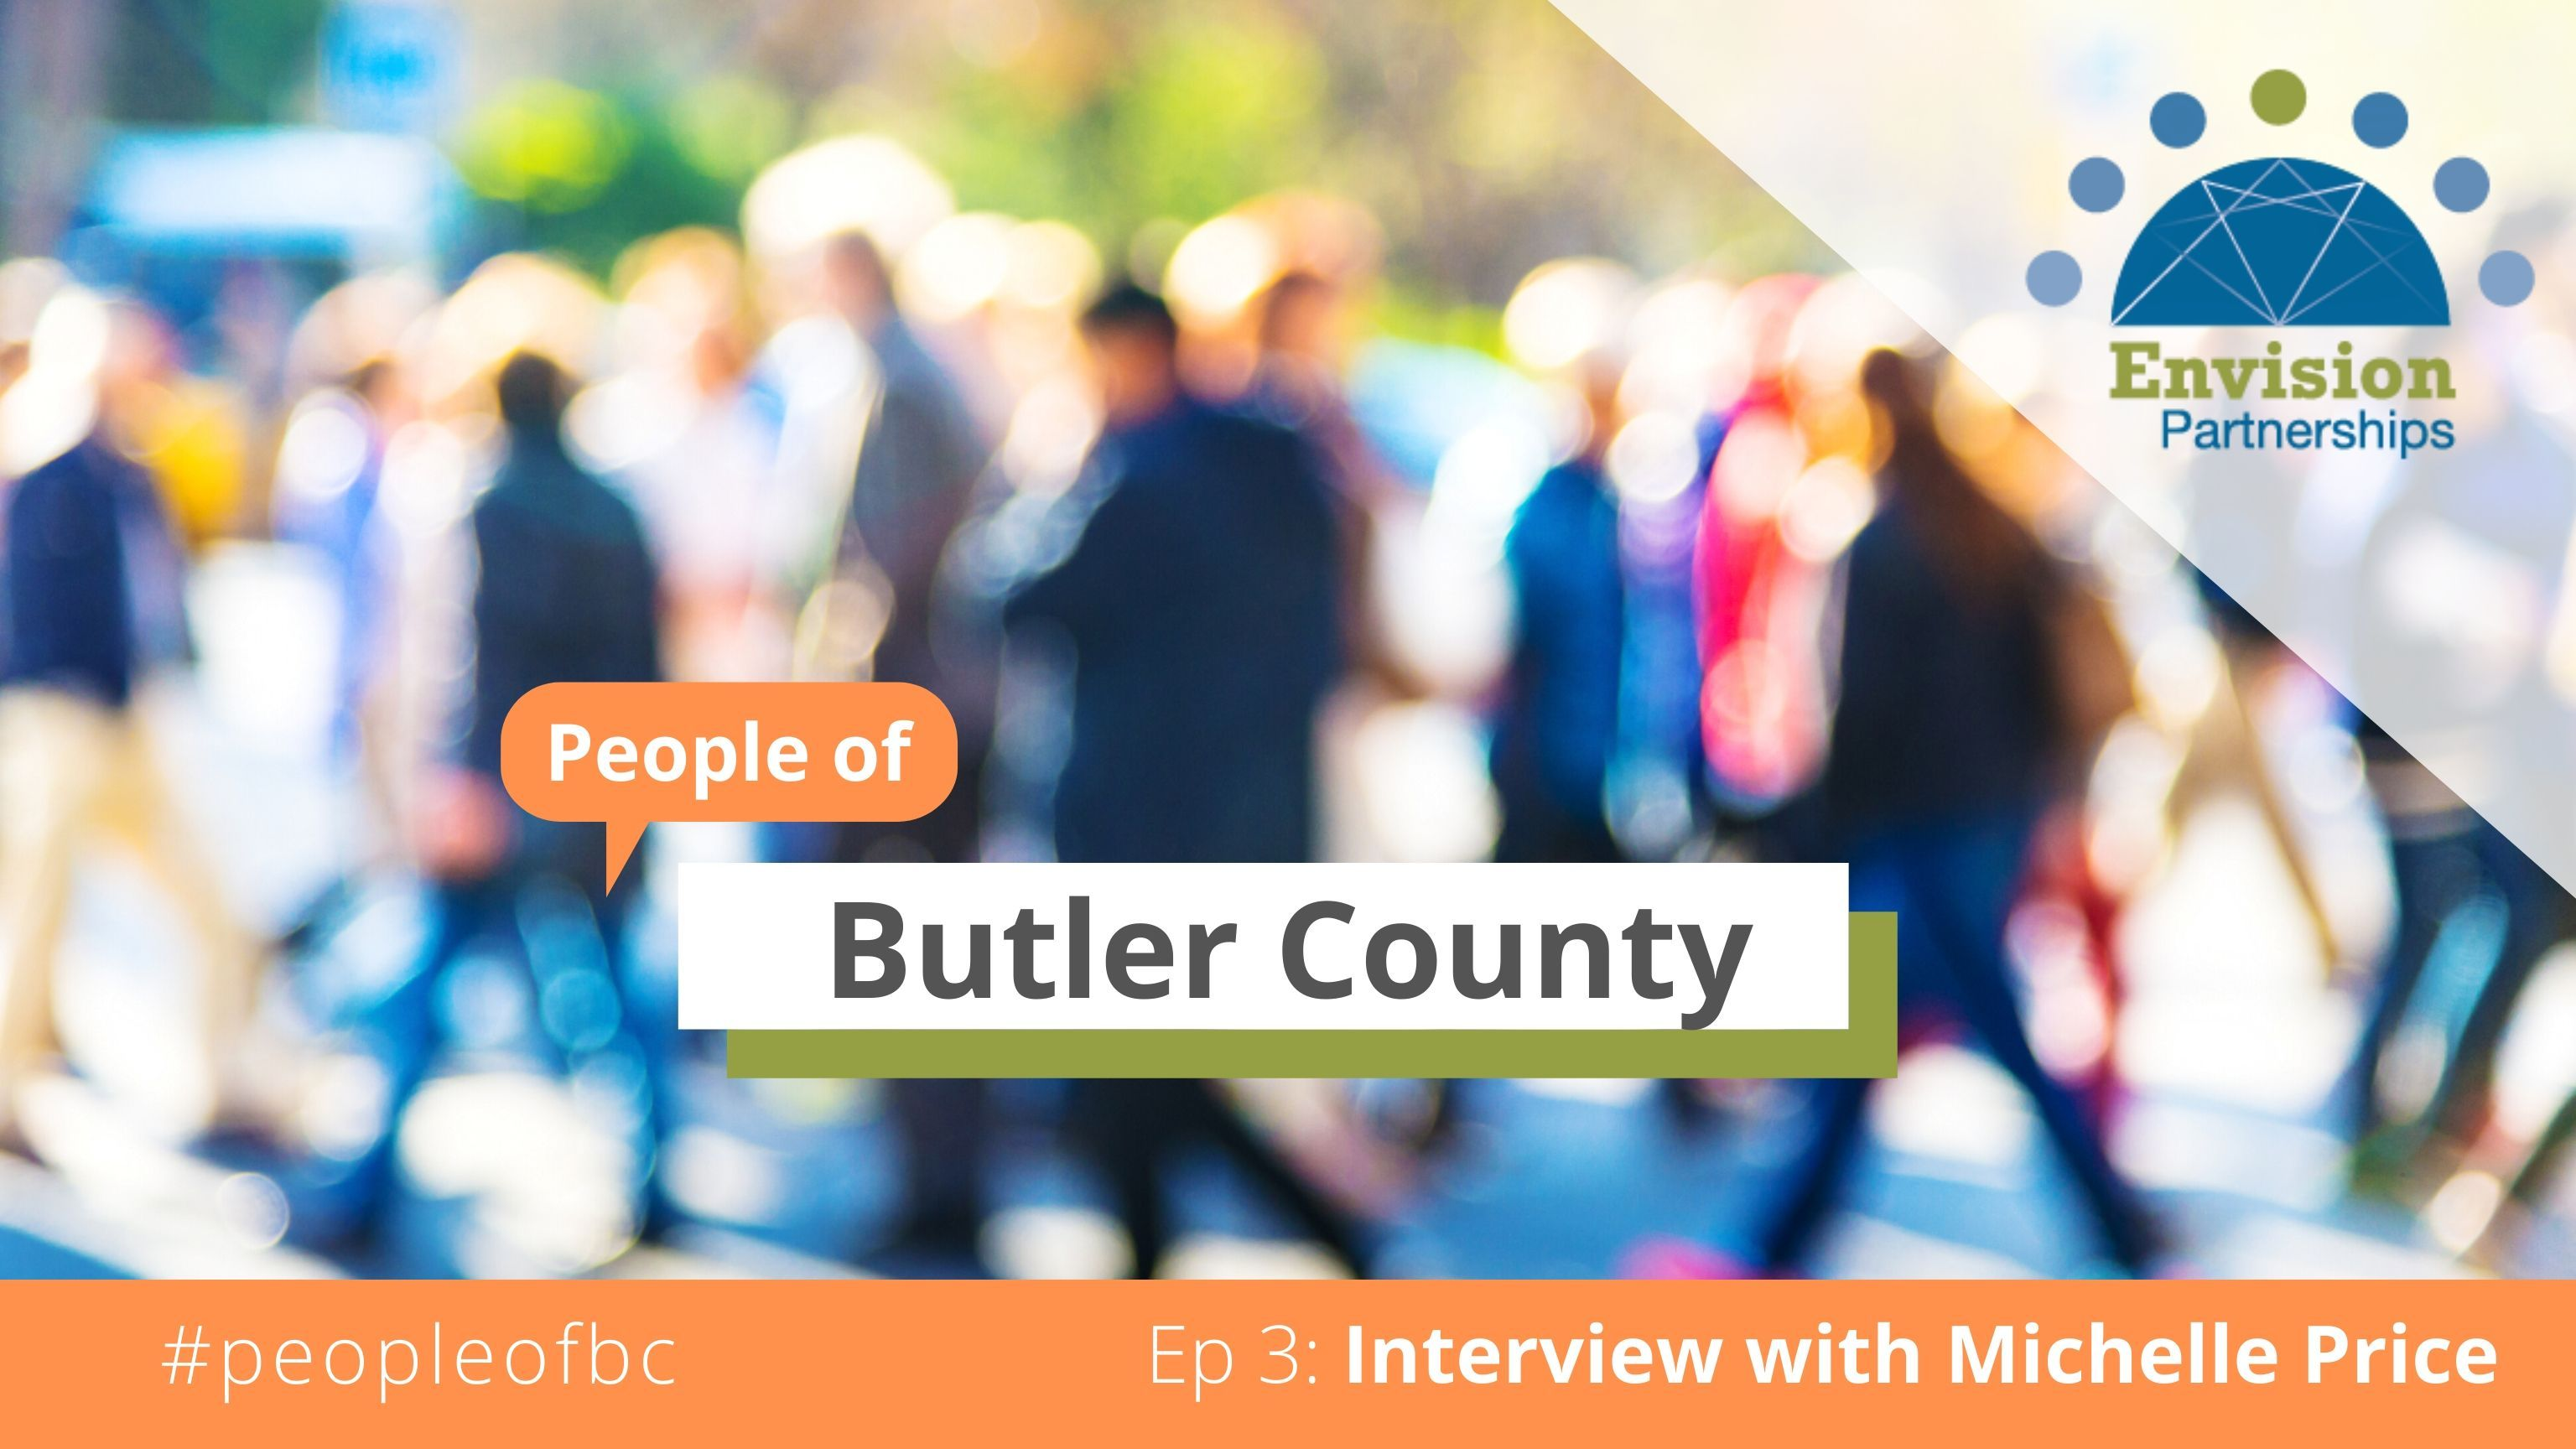 People of Butler County Episode 3: Interview with Michelle Price